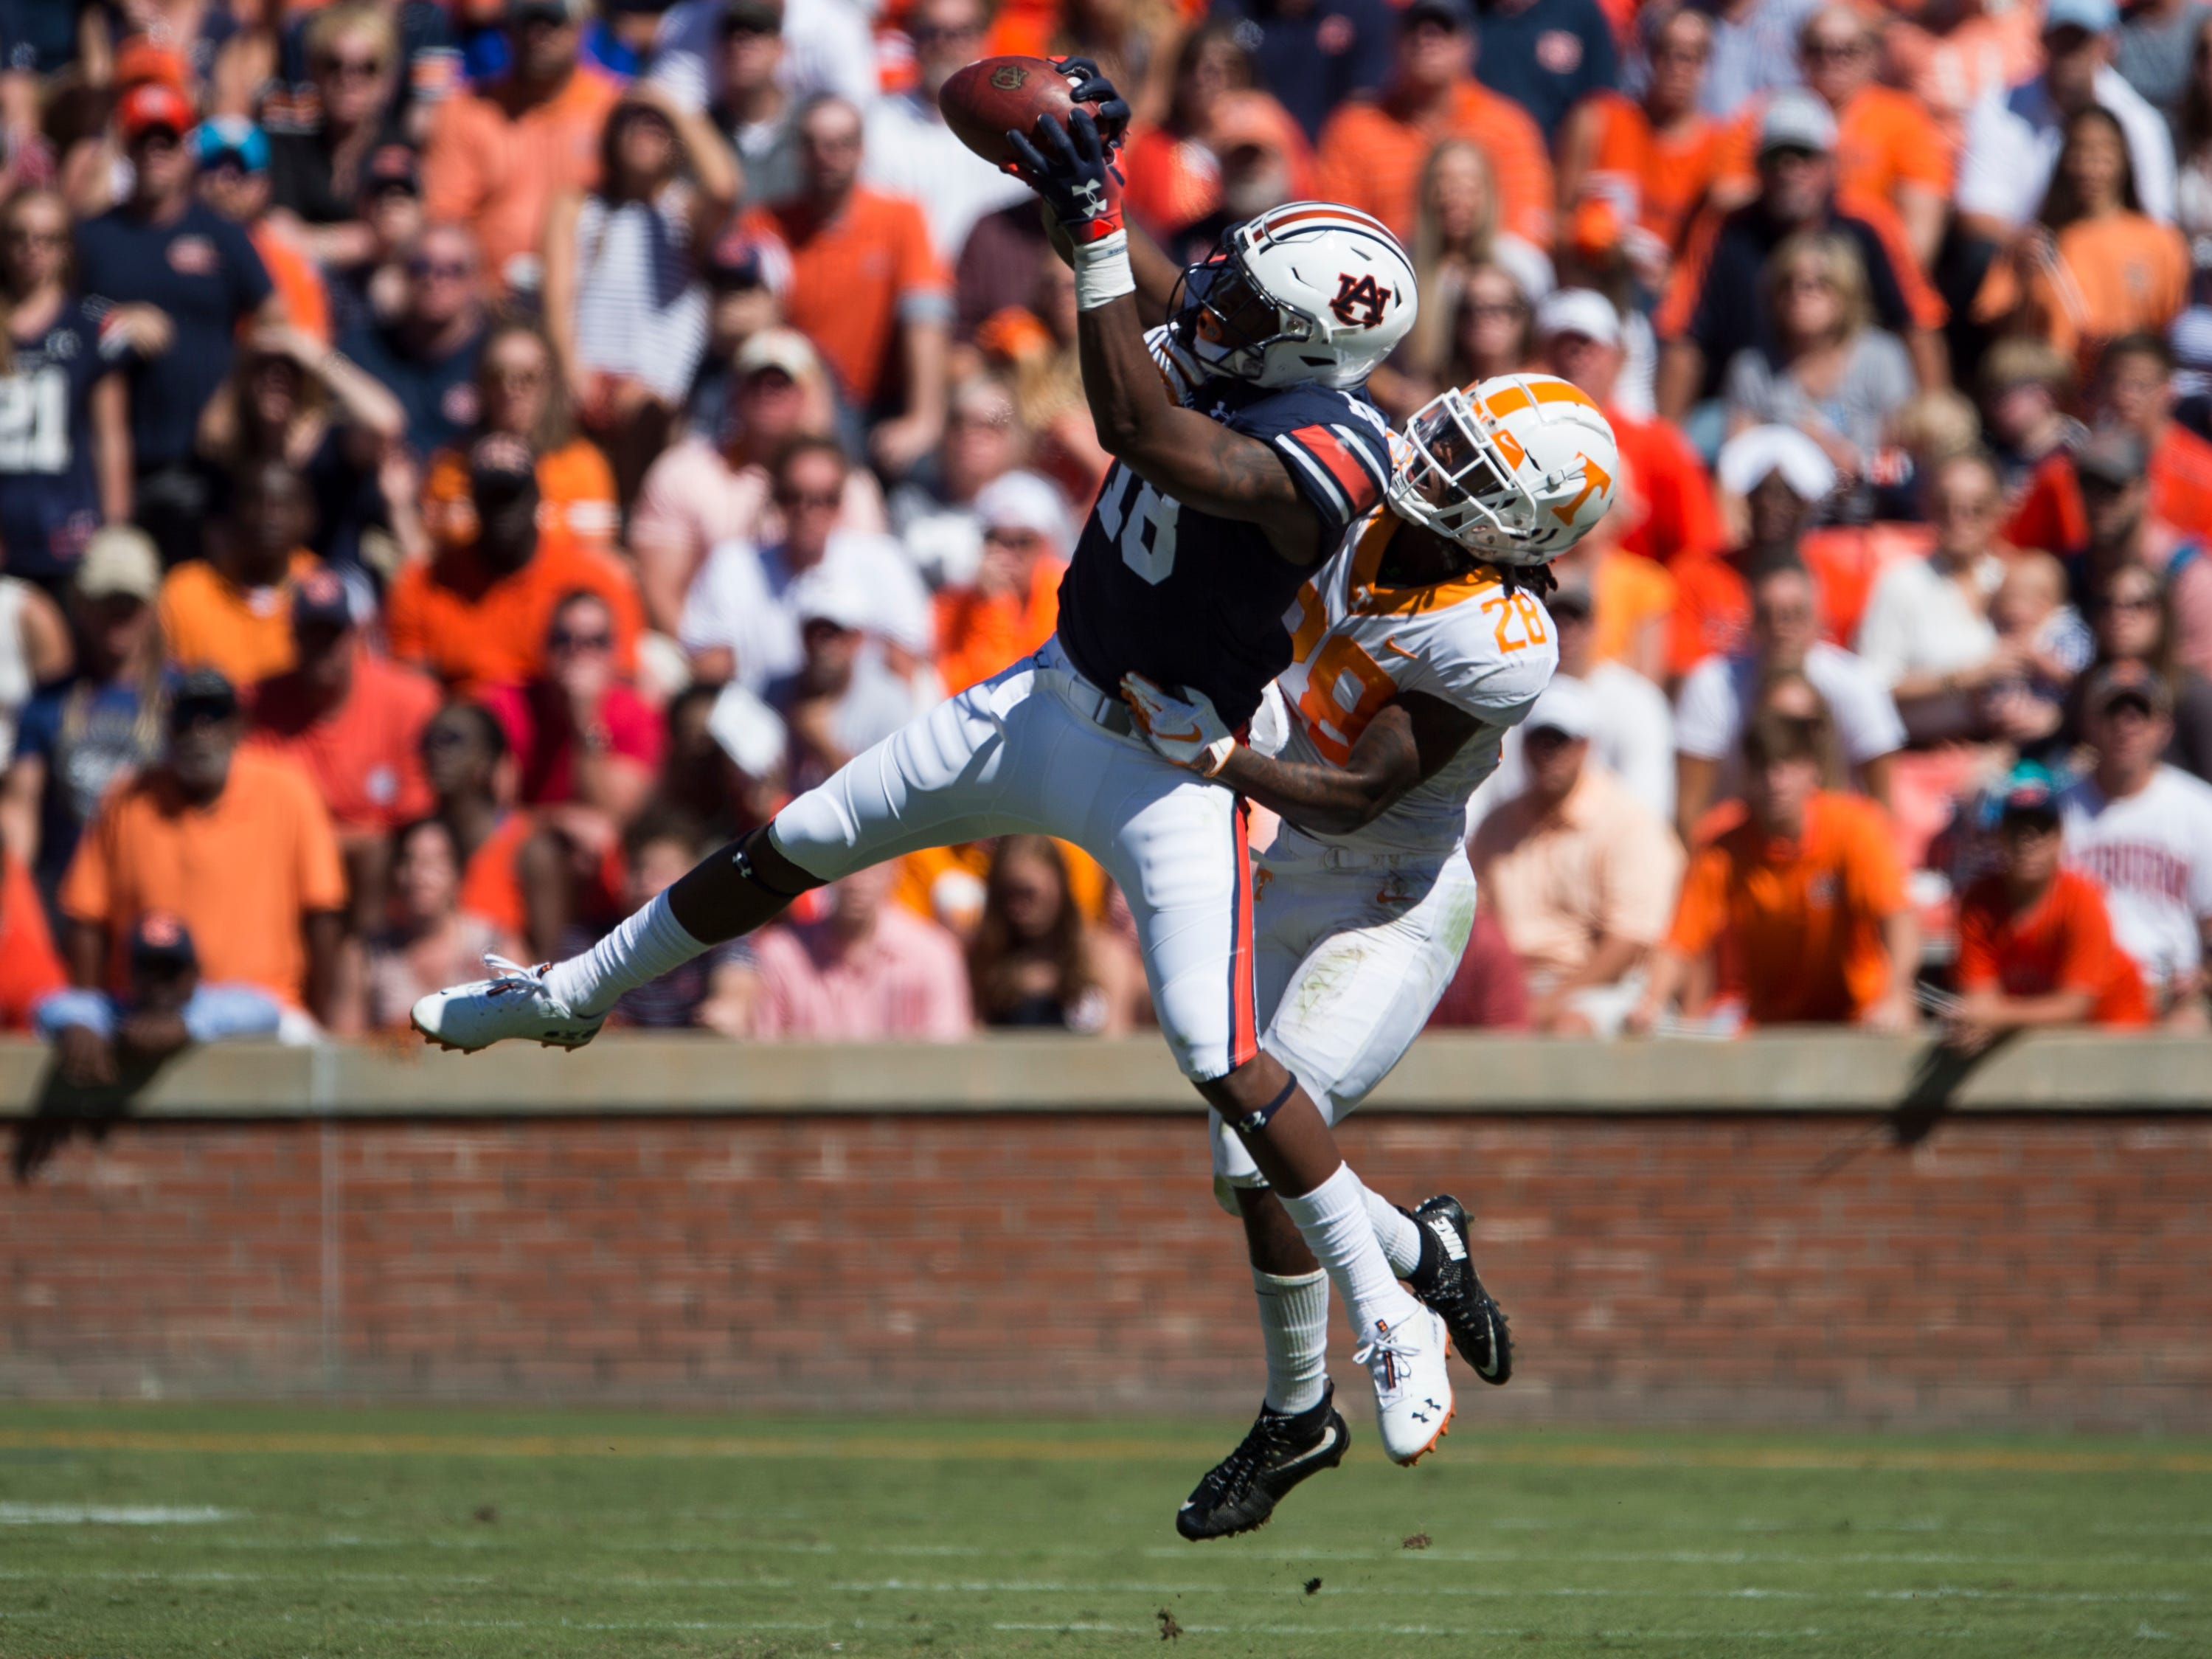 at Jordan-Hare Stadium in Auburn, Ala., on Saturday, Oct. 13, 2018. Tennessee defeated Auburn 30-24.